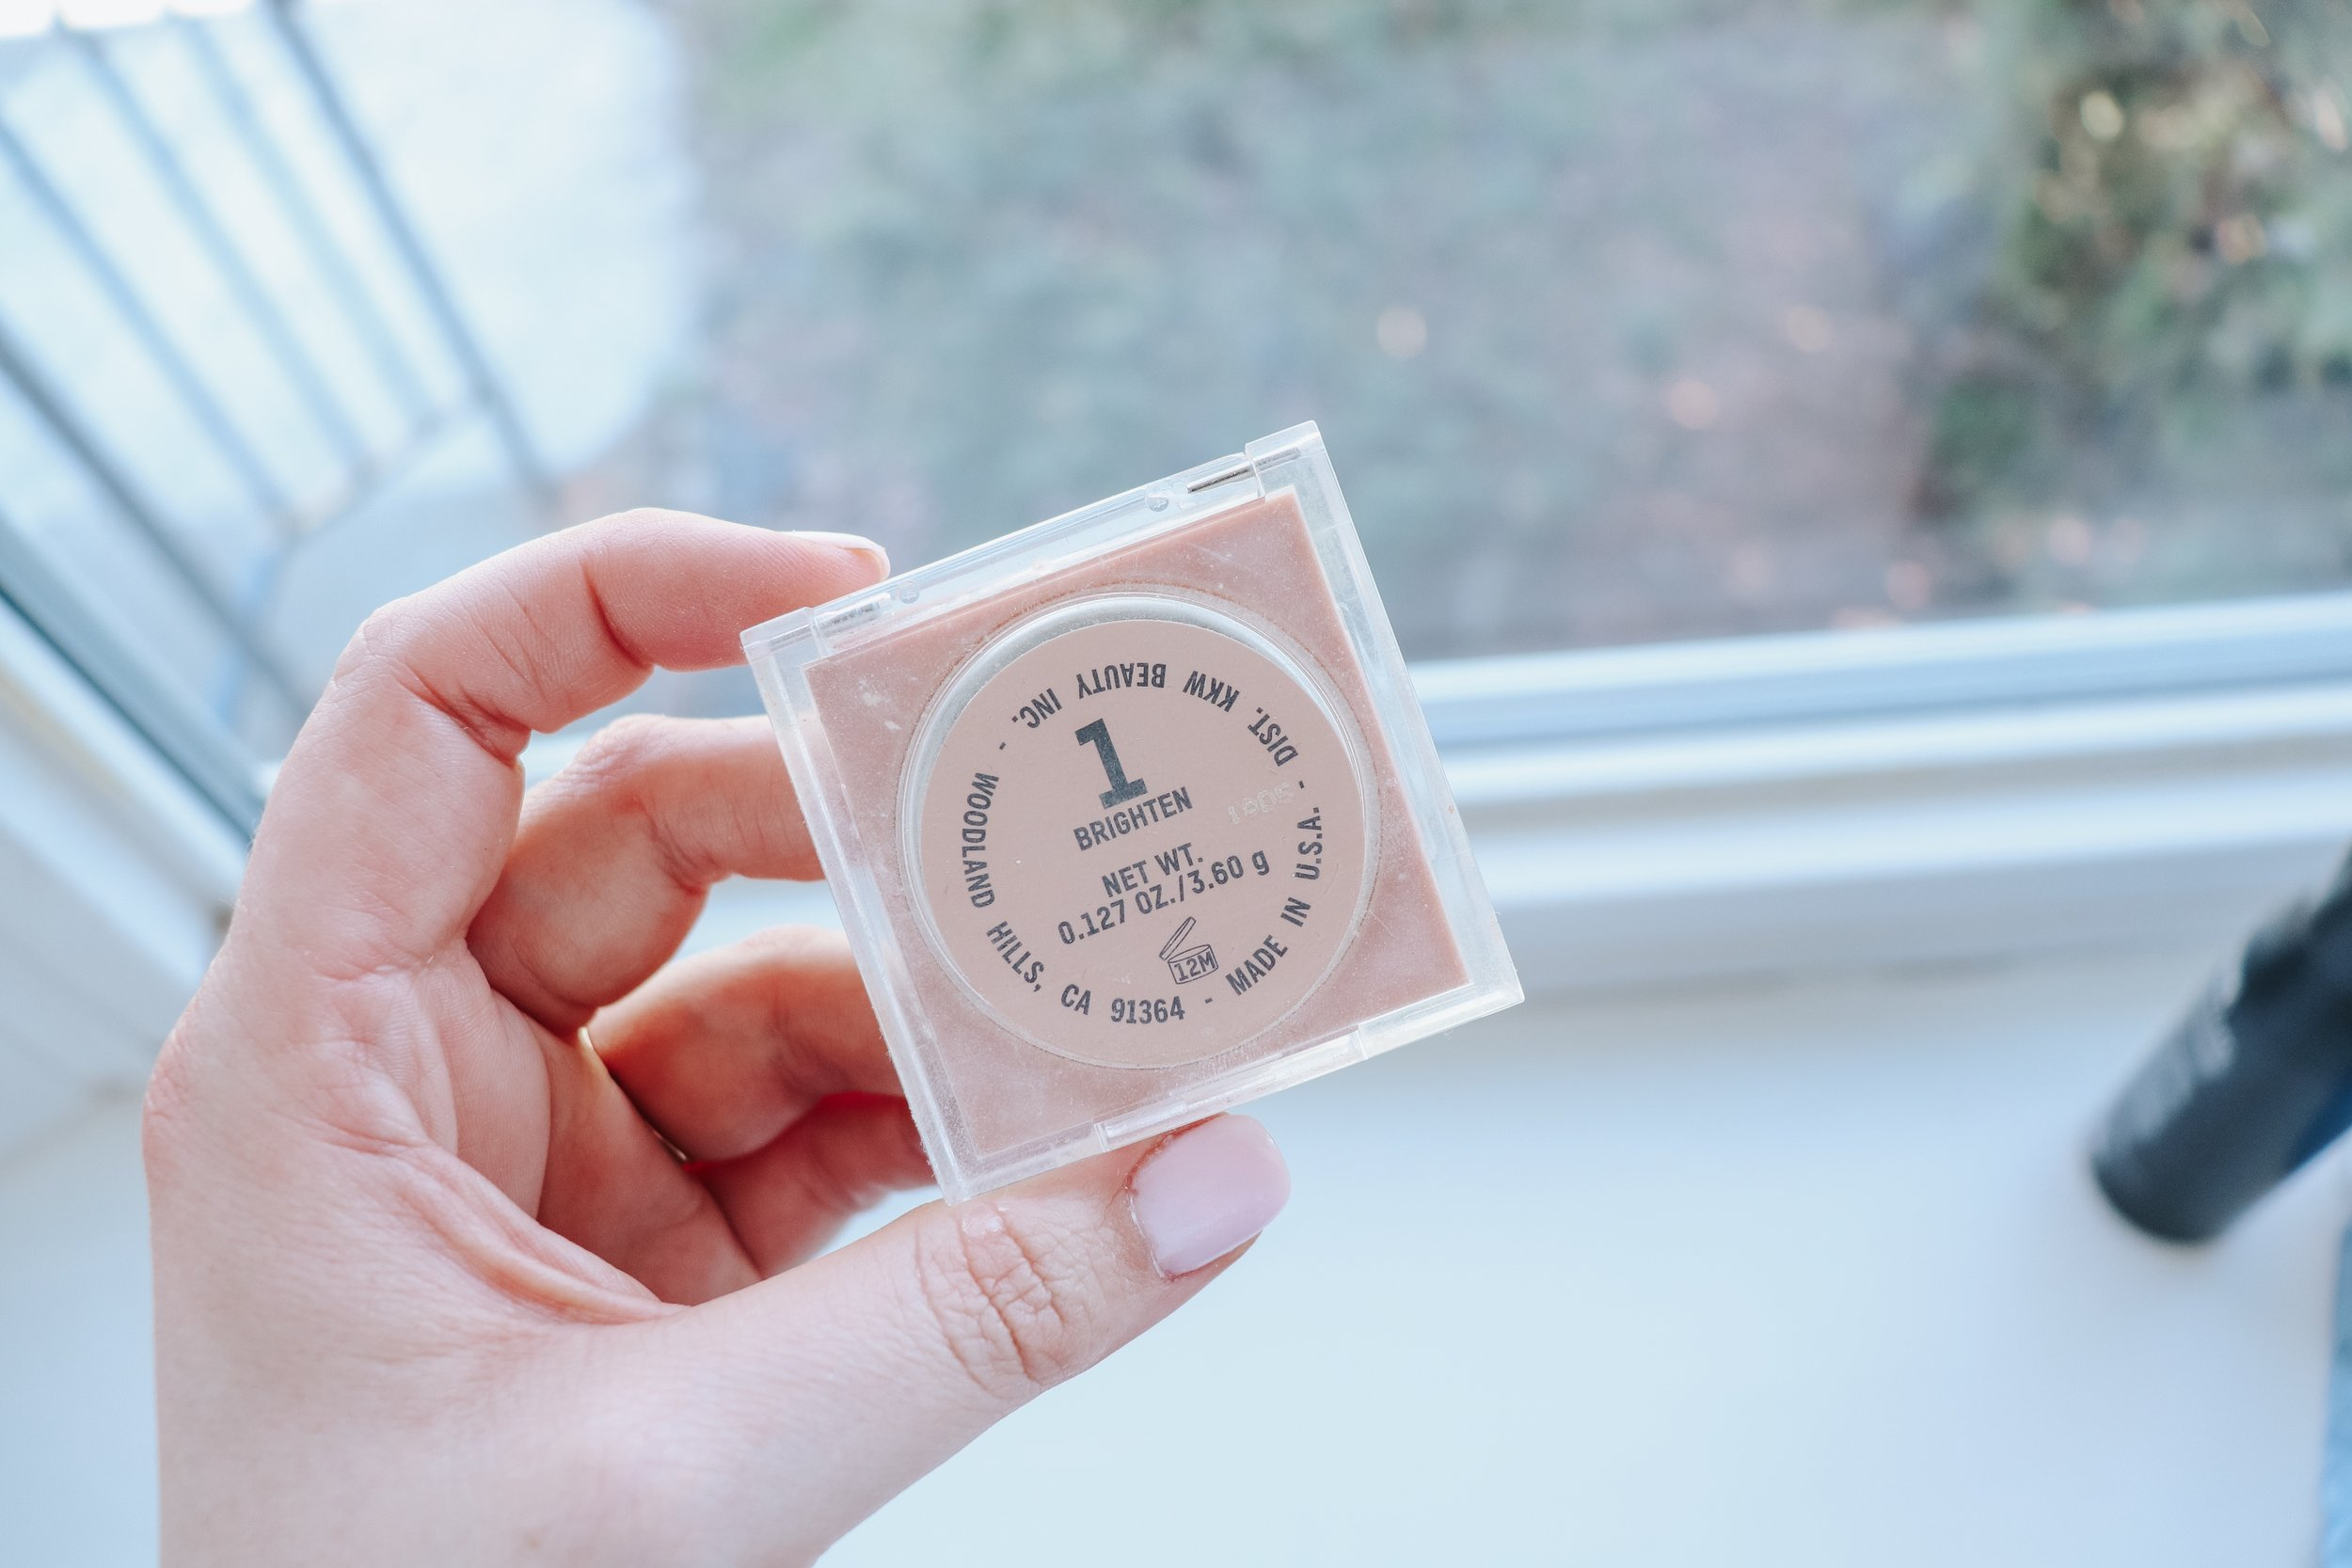 This right here is a nifty little product. I had to play around with it a bit but I dust a little bit of it under my eyes at the end of my makeup routine and it helps blend my blush and under eye together and adds just enough brightness if i'm needing it!